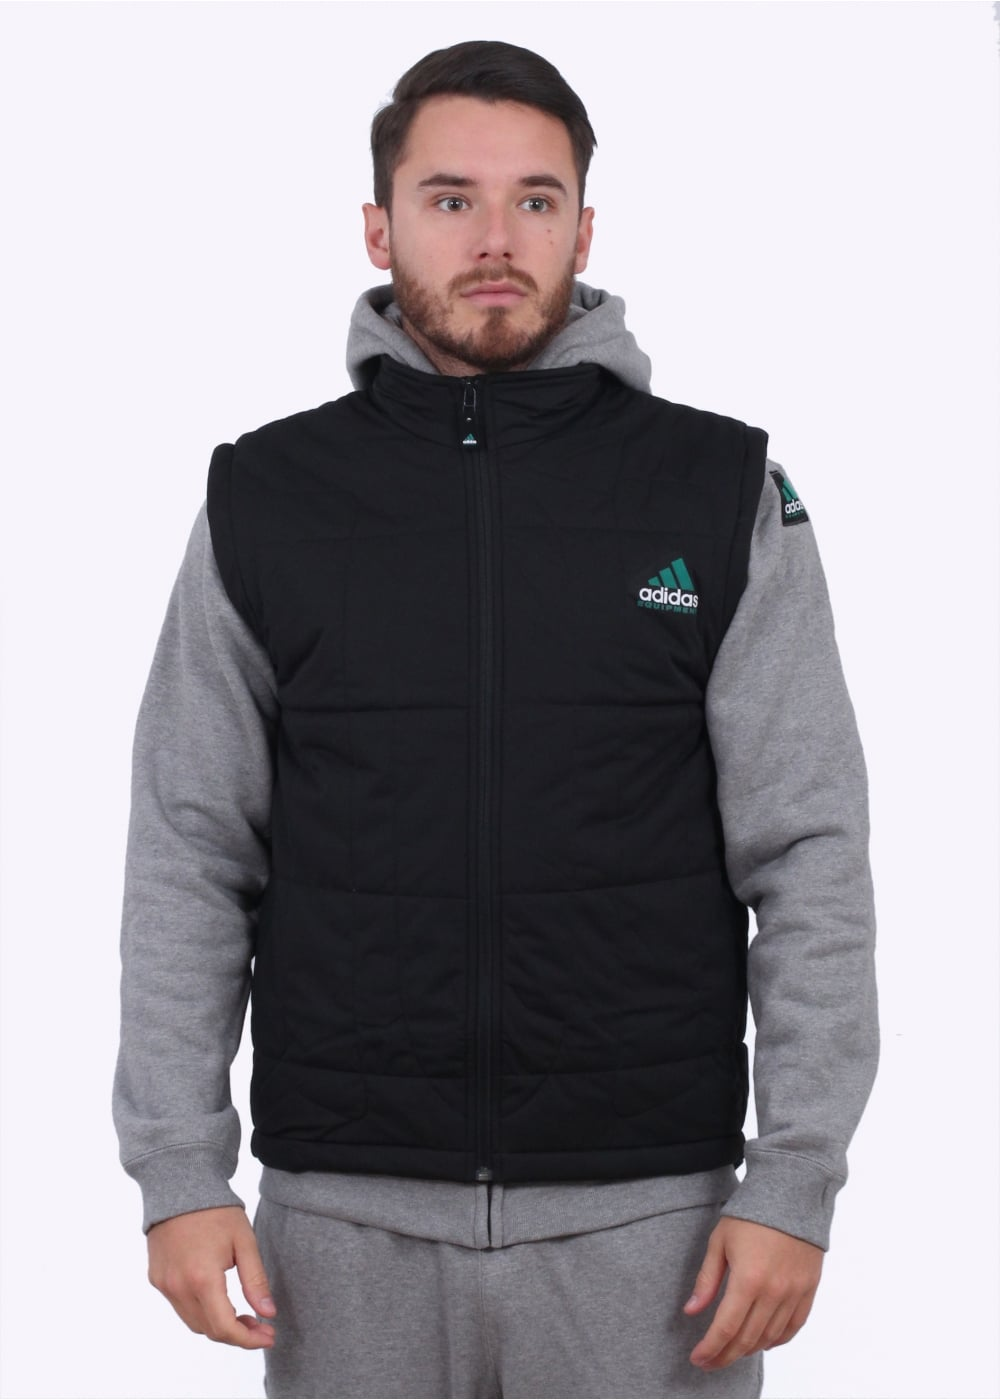 adidas originals vest mens